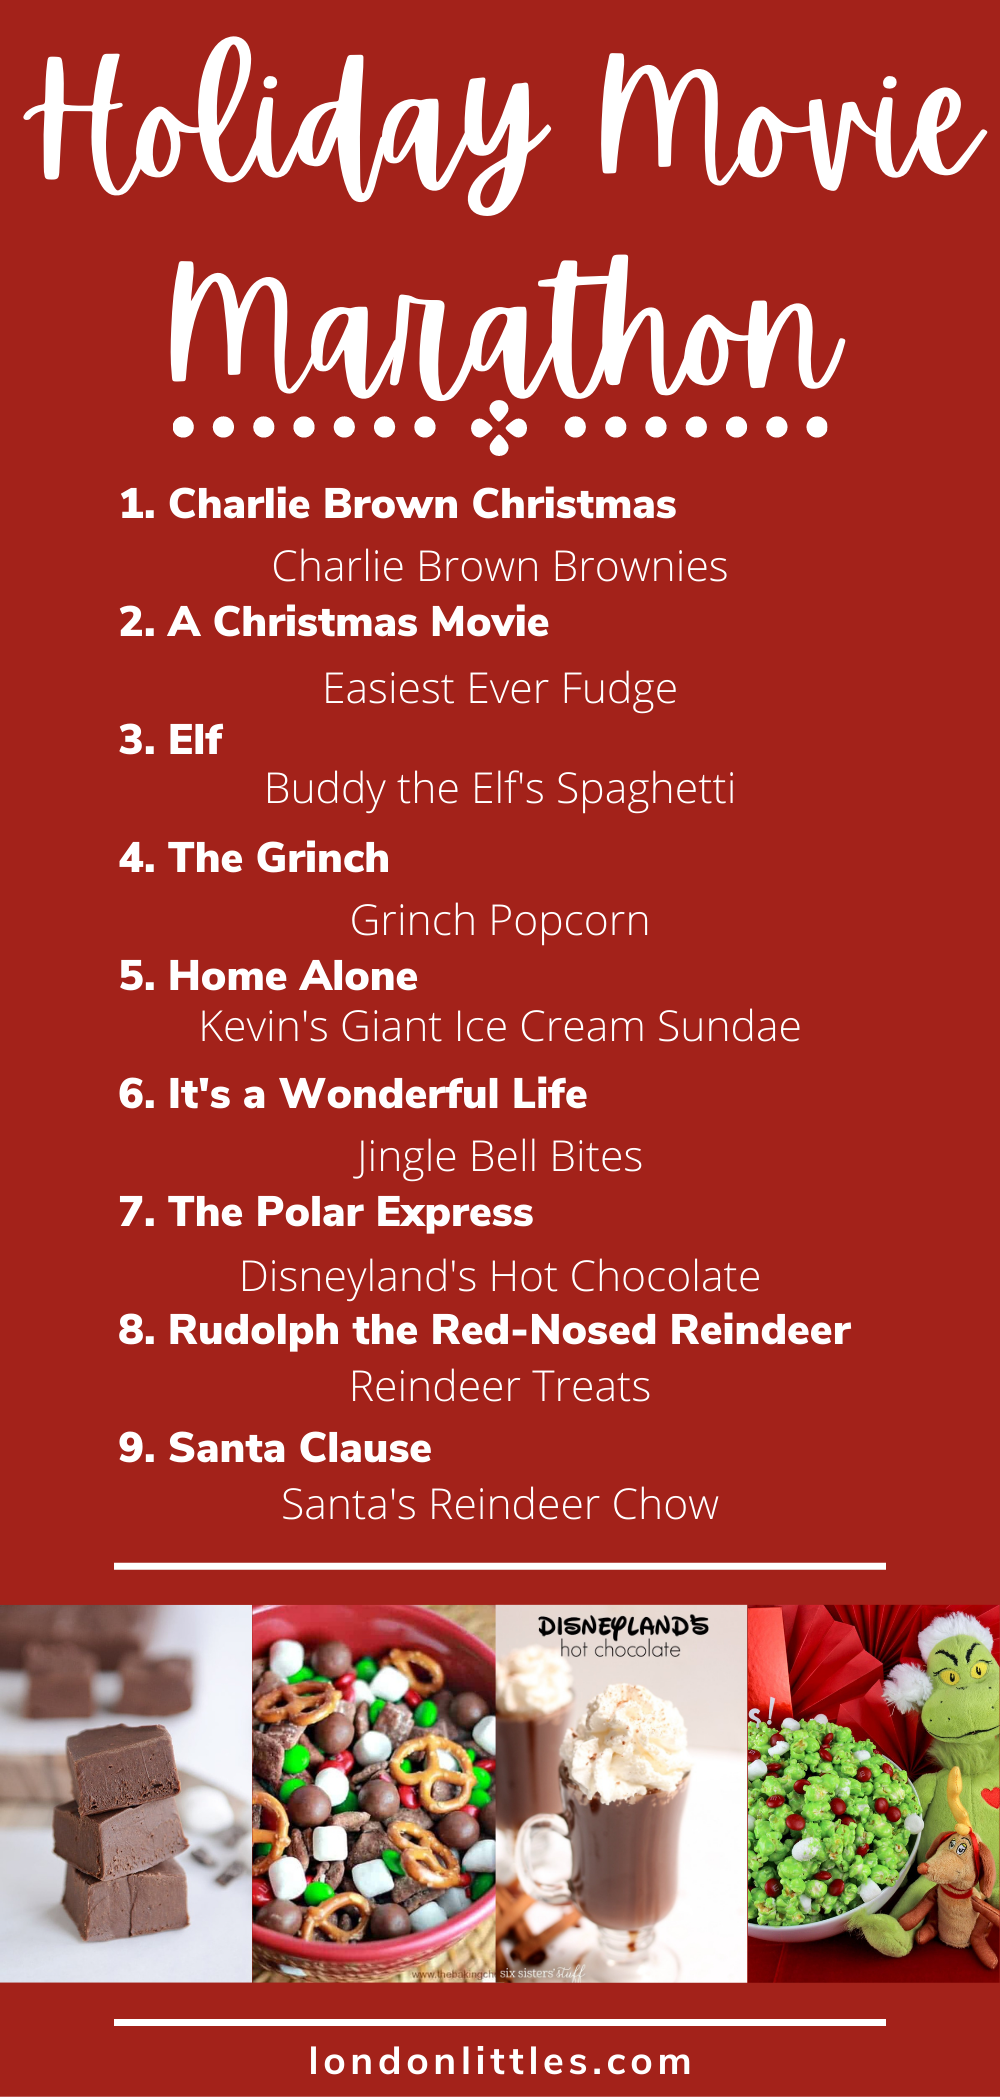 holiday movies for the family with treats